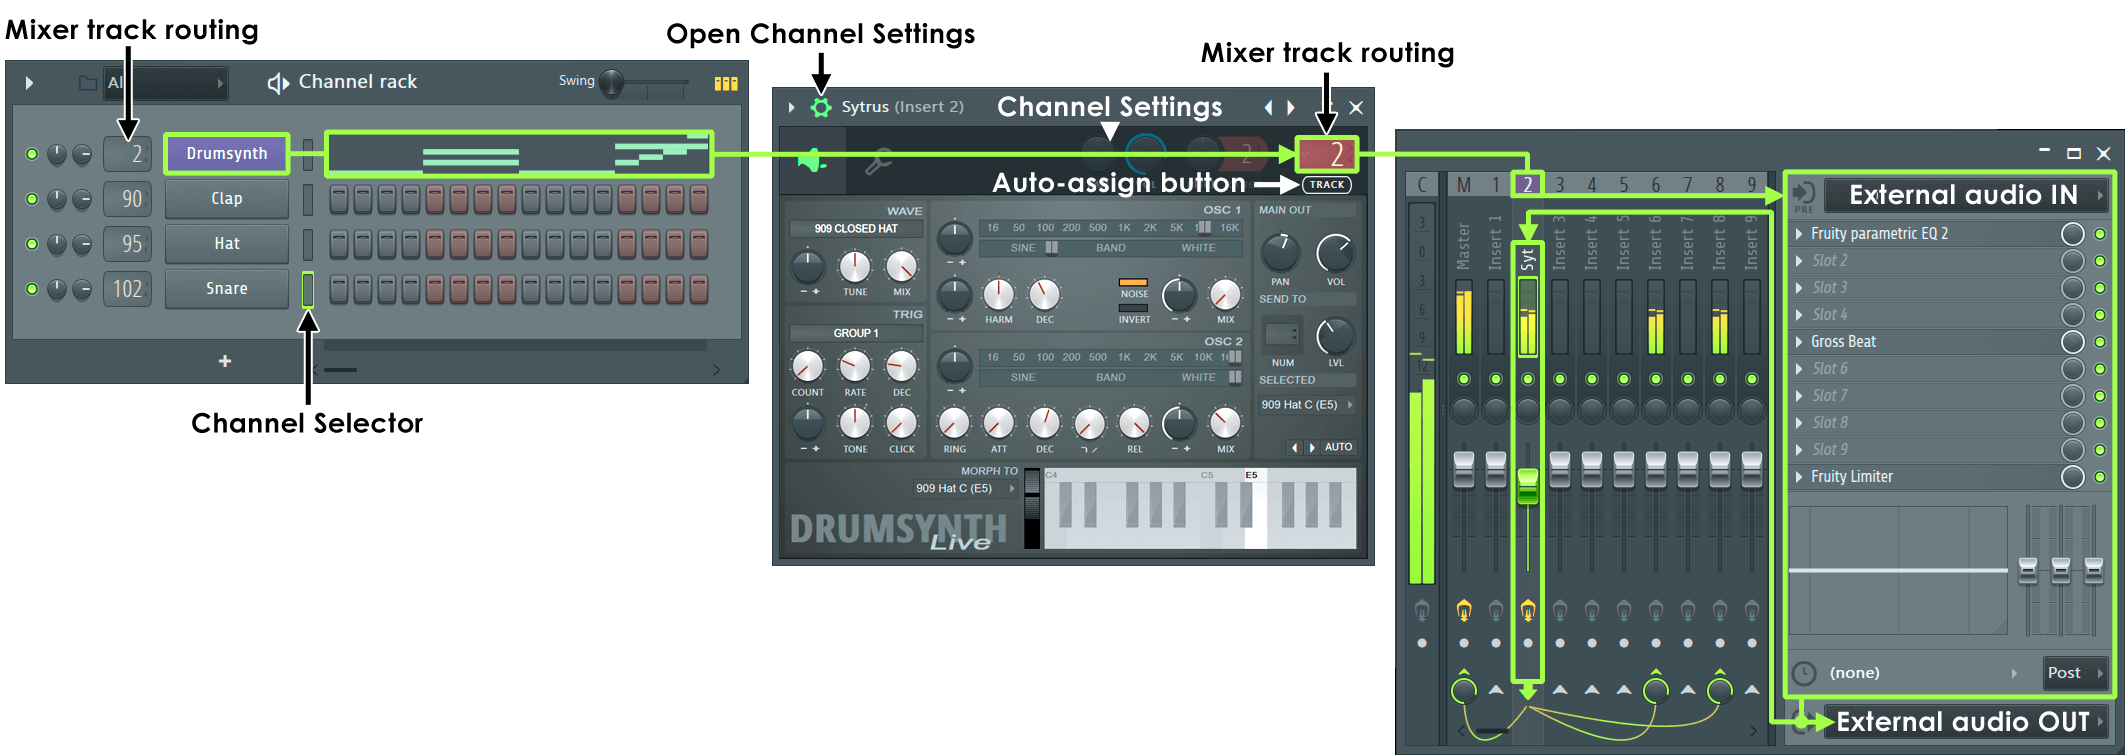 Mixer Audio Routing